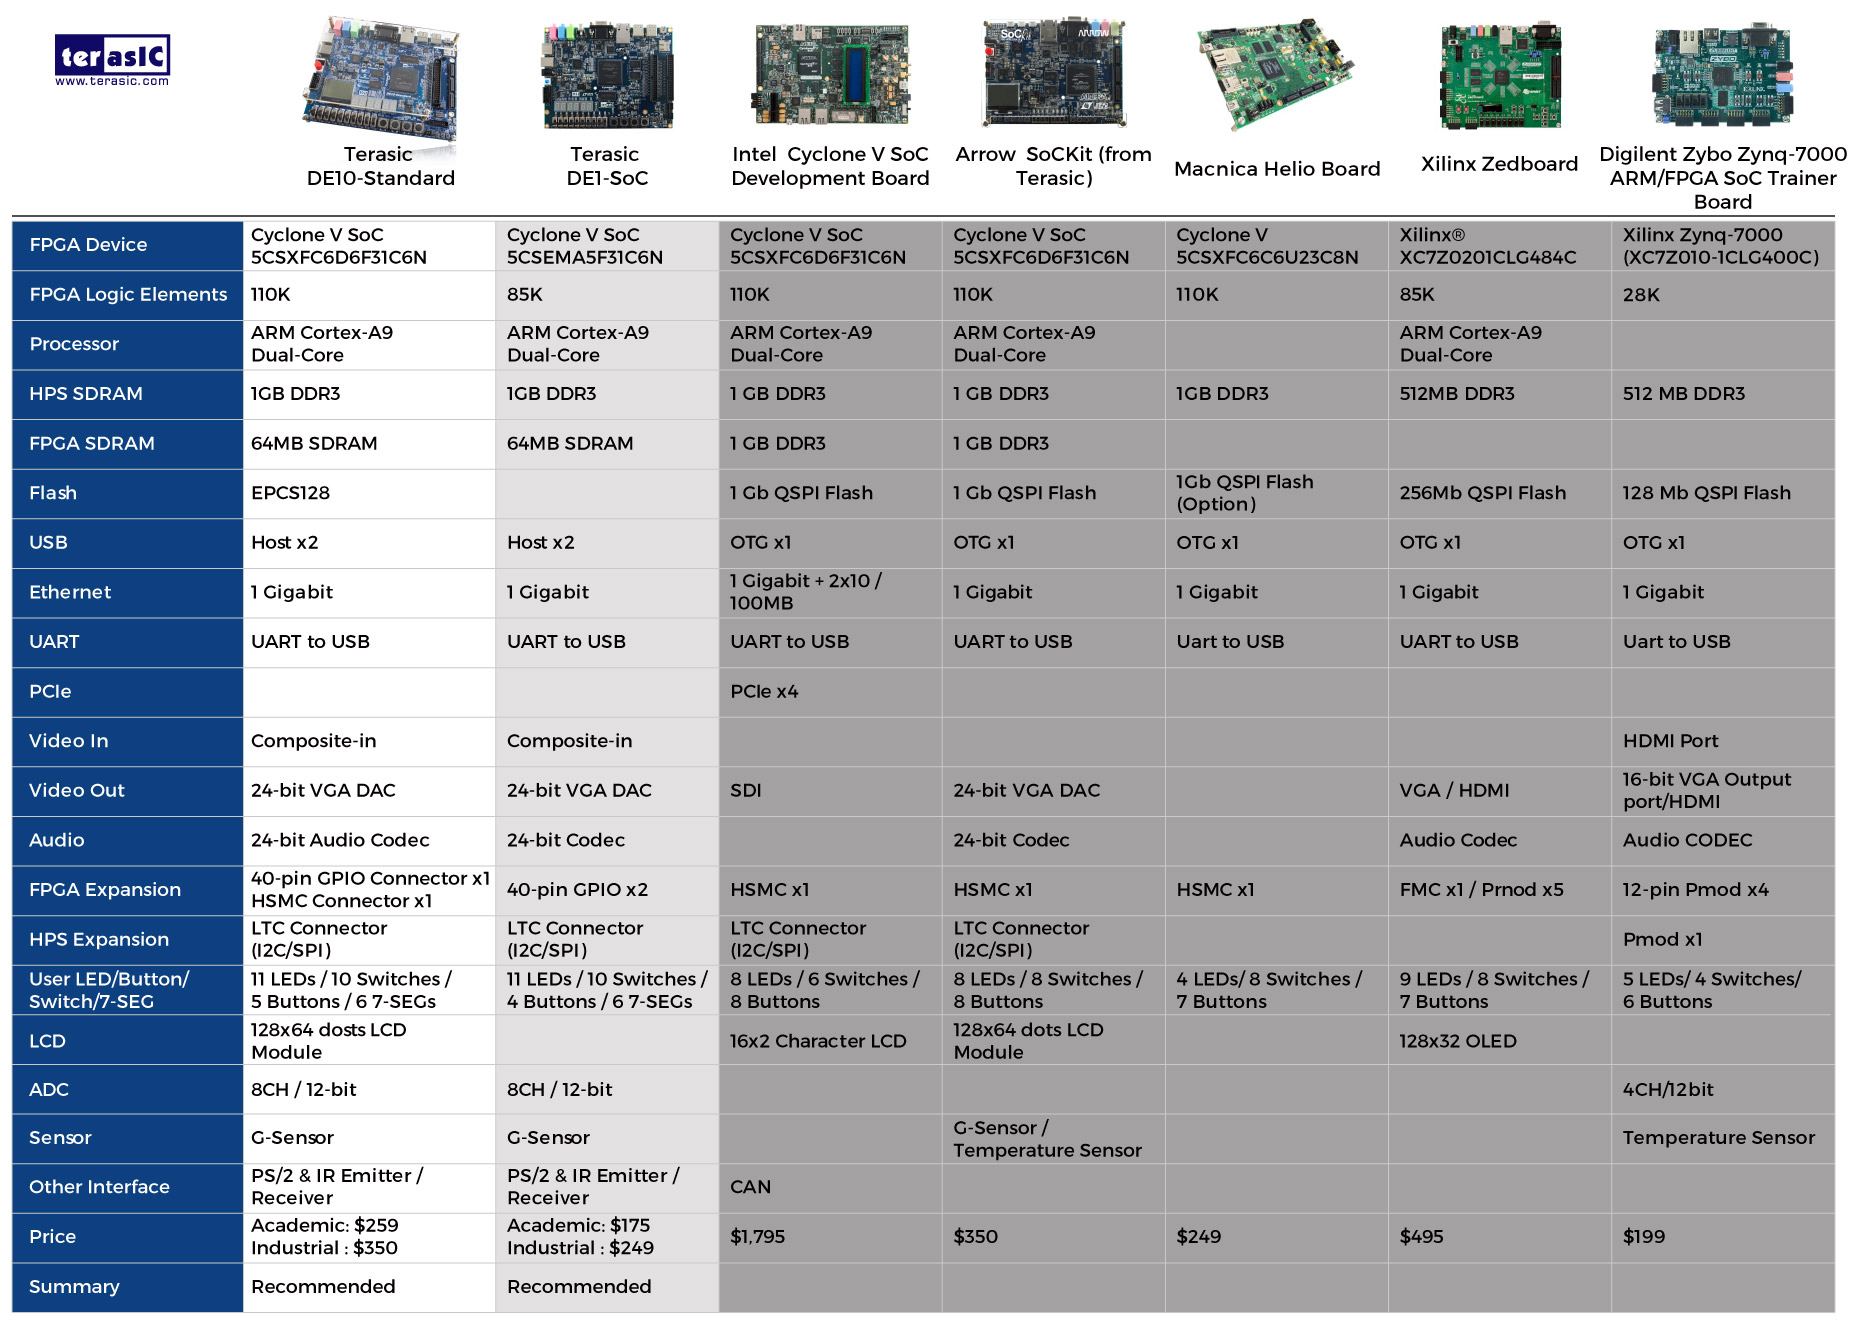 Terasic - SoC Platform - Cyclone - DE1-SoC Board